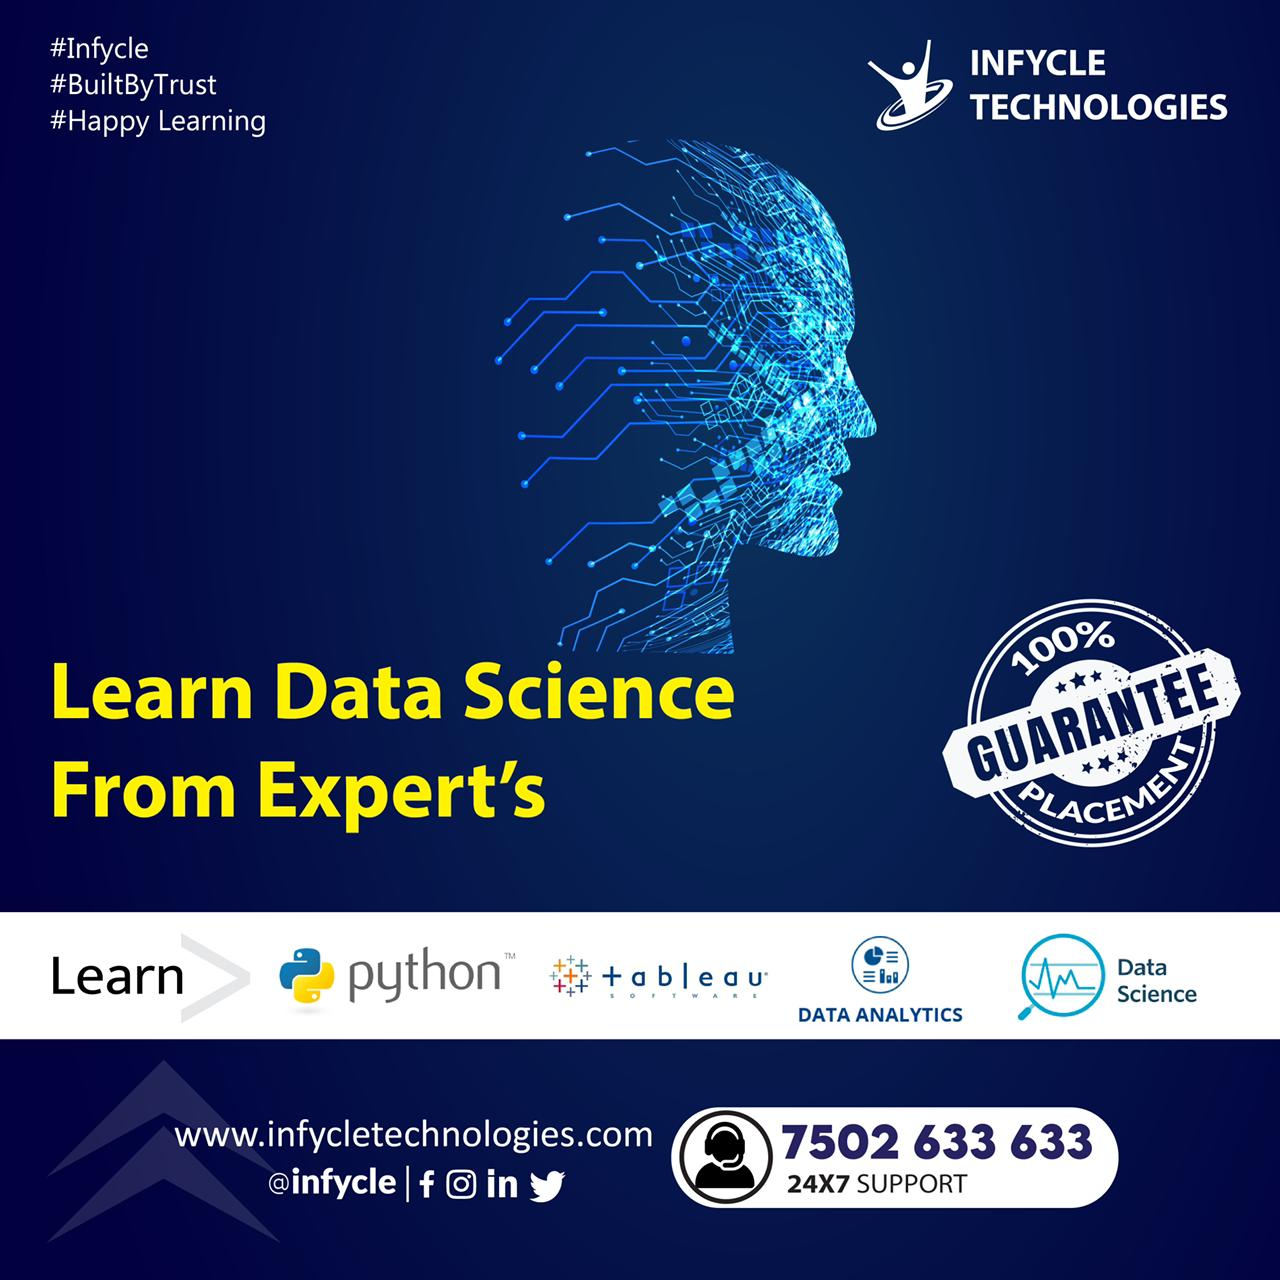 Data Science Course in Chennai  Infycle Technologies ,Chennai,Services,Education & Classes,77traders